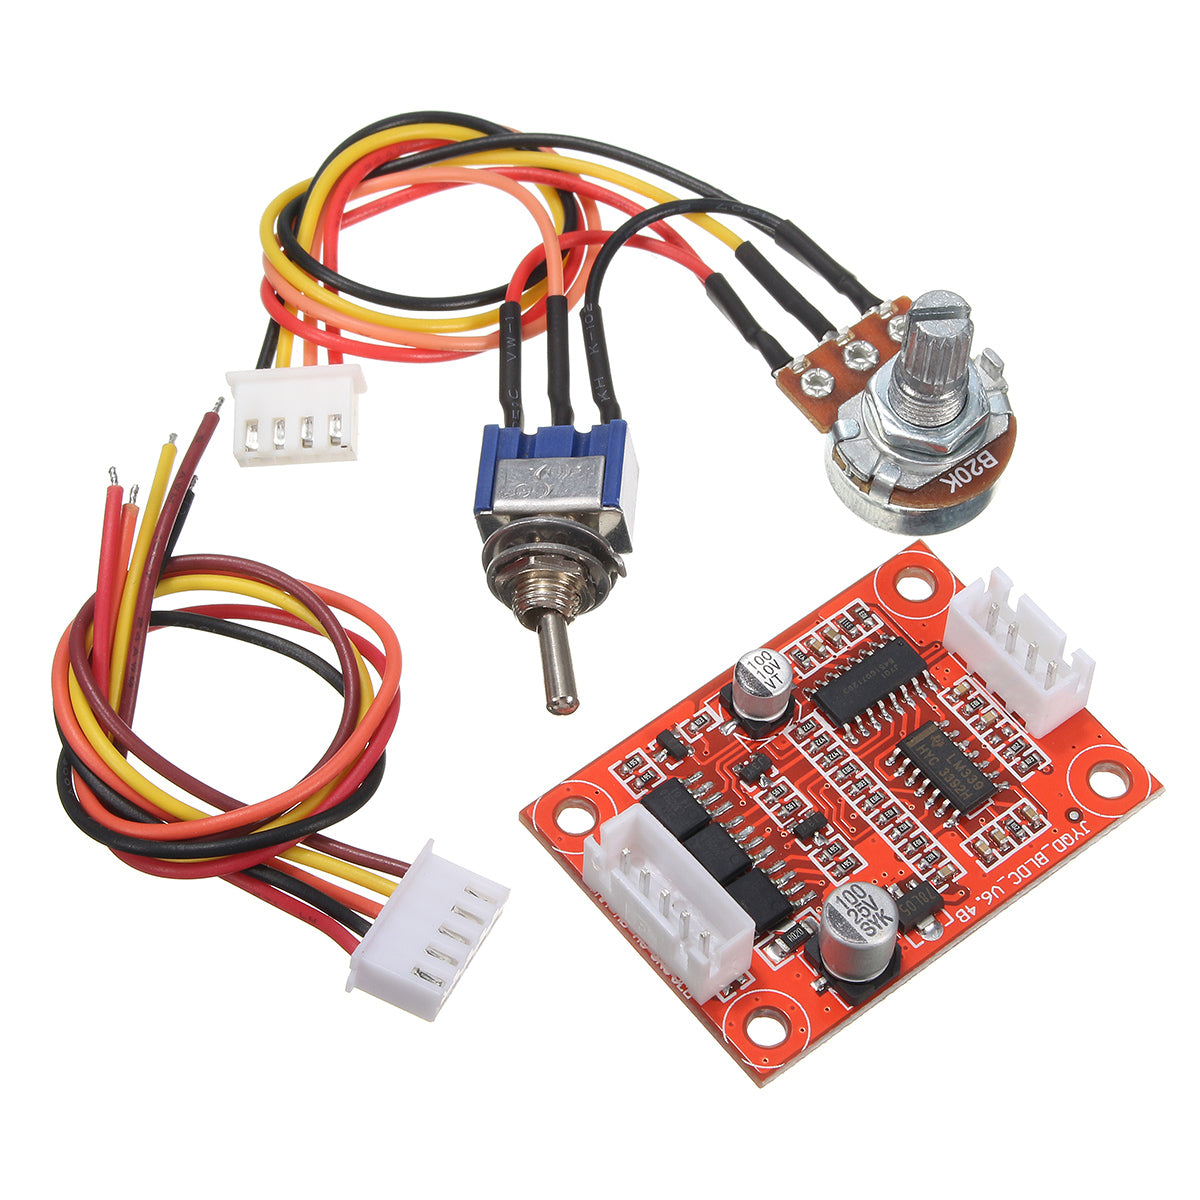 Brushless Motor Controller Wiring Dc 12v 24v 36v 500w Hall Balanced Driver Board Kit For Hard Drive Pump